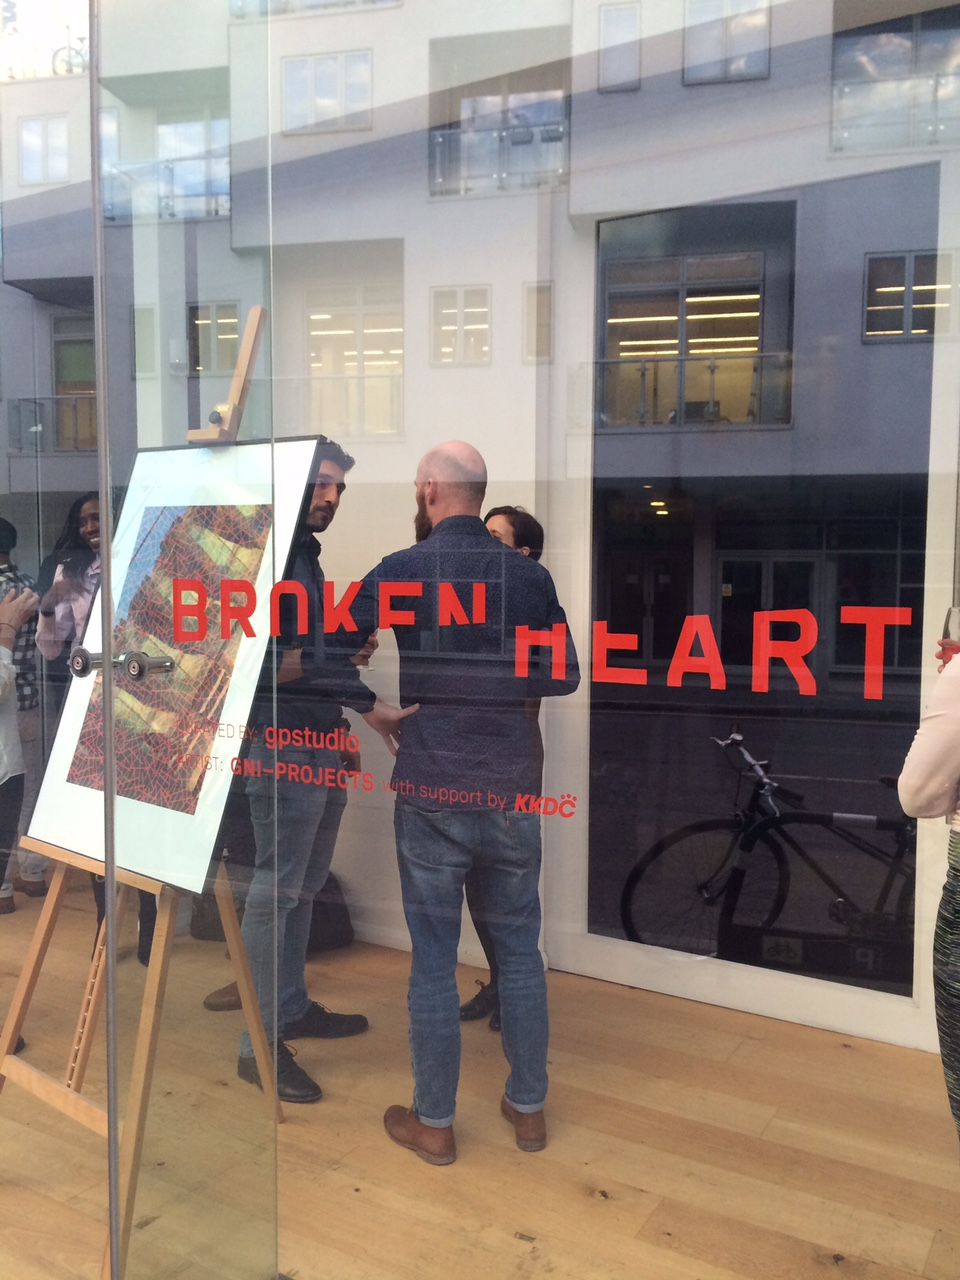 gpstudio - Broken Heart launch 3 - May 1 2015